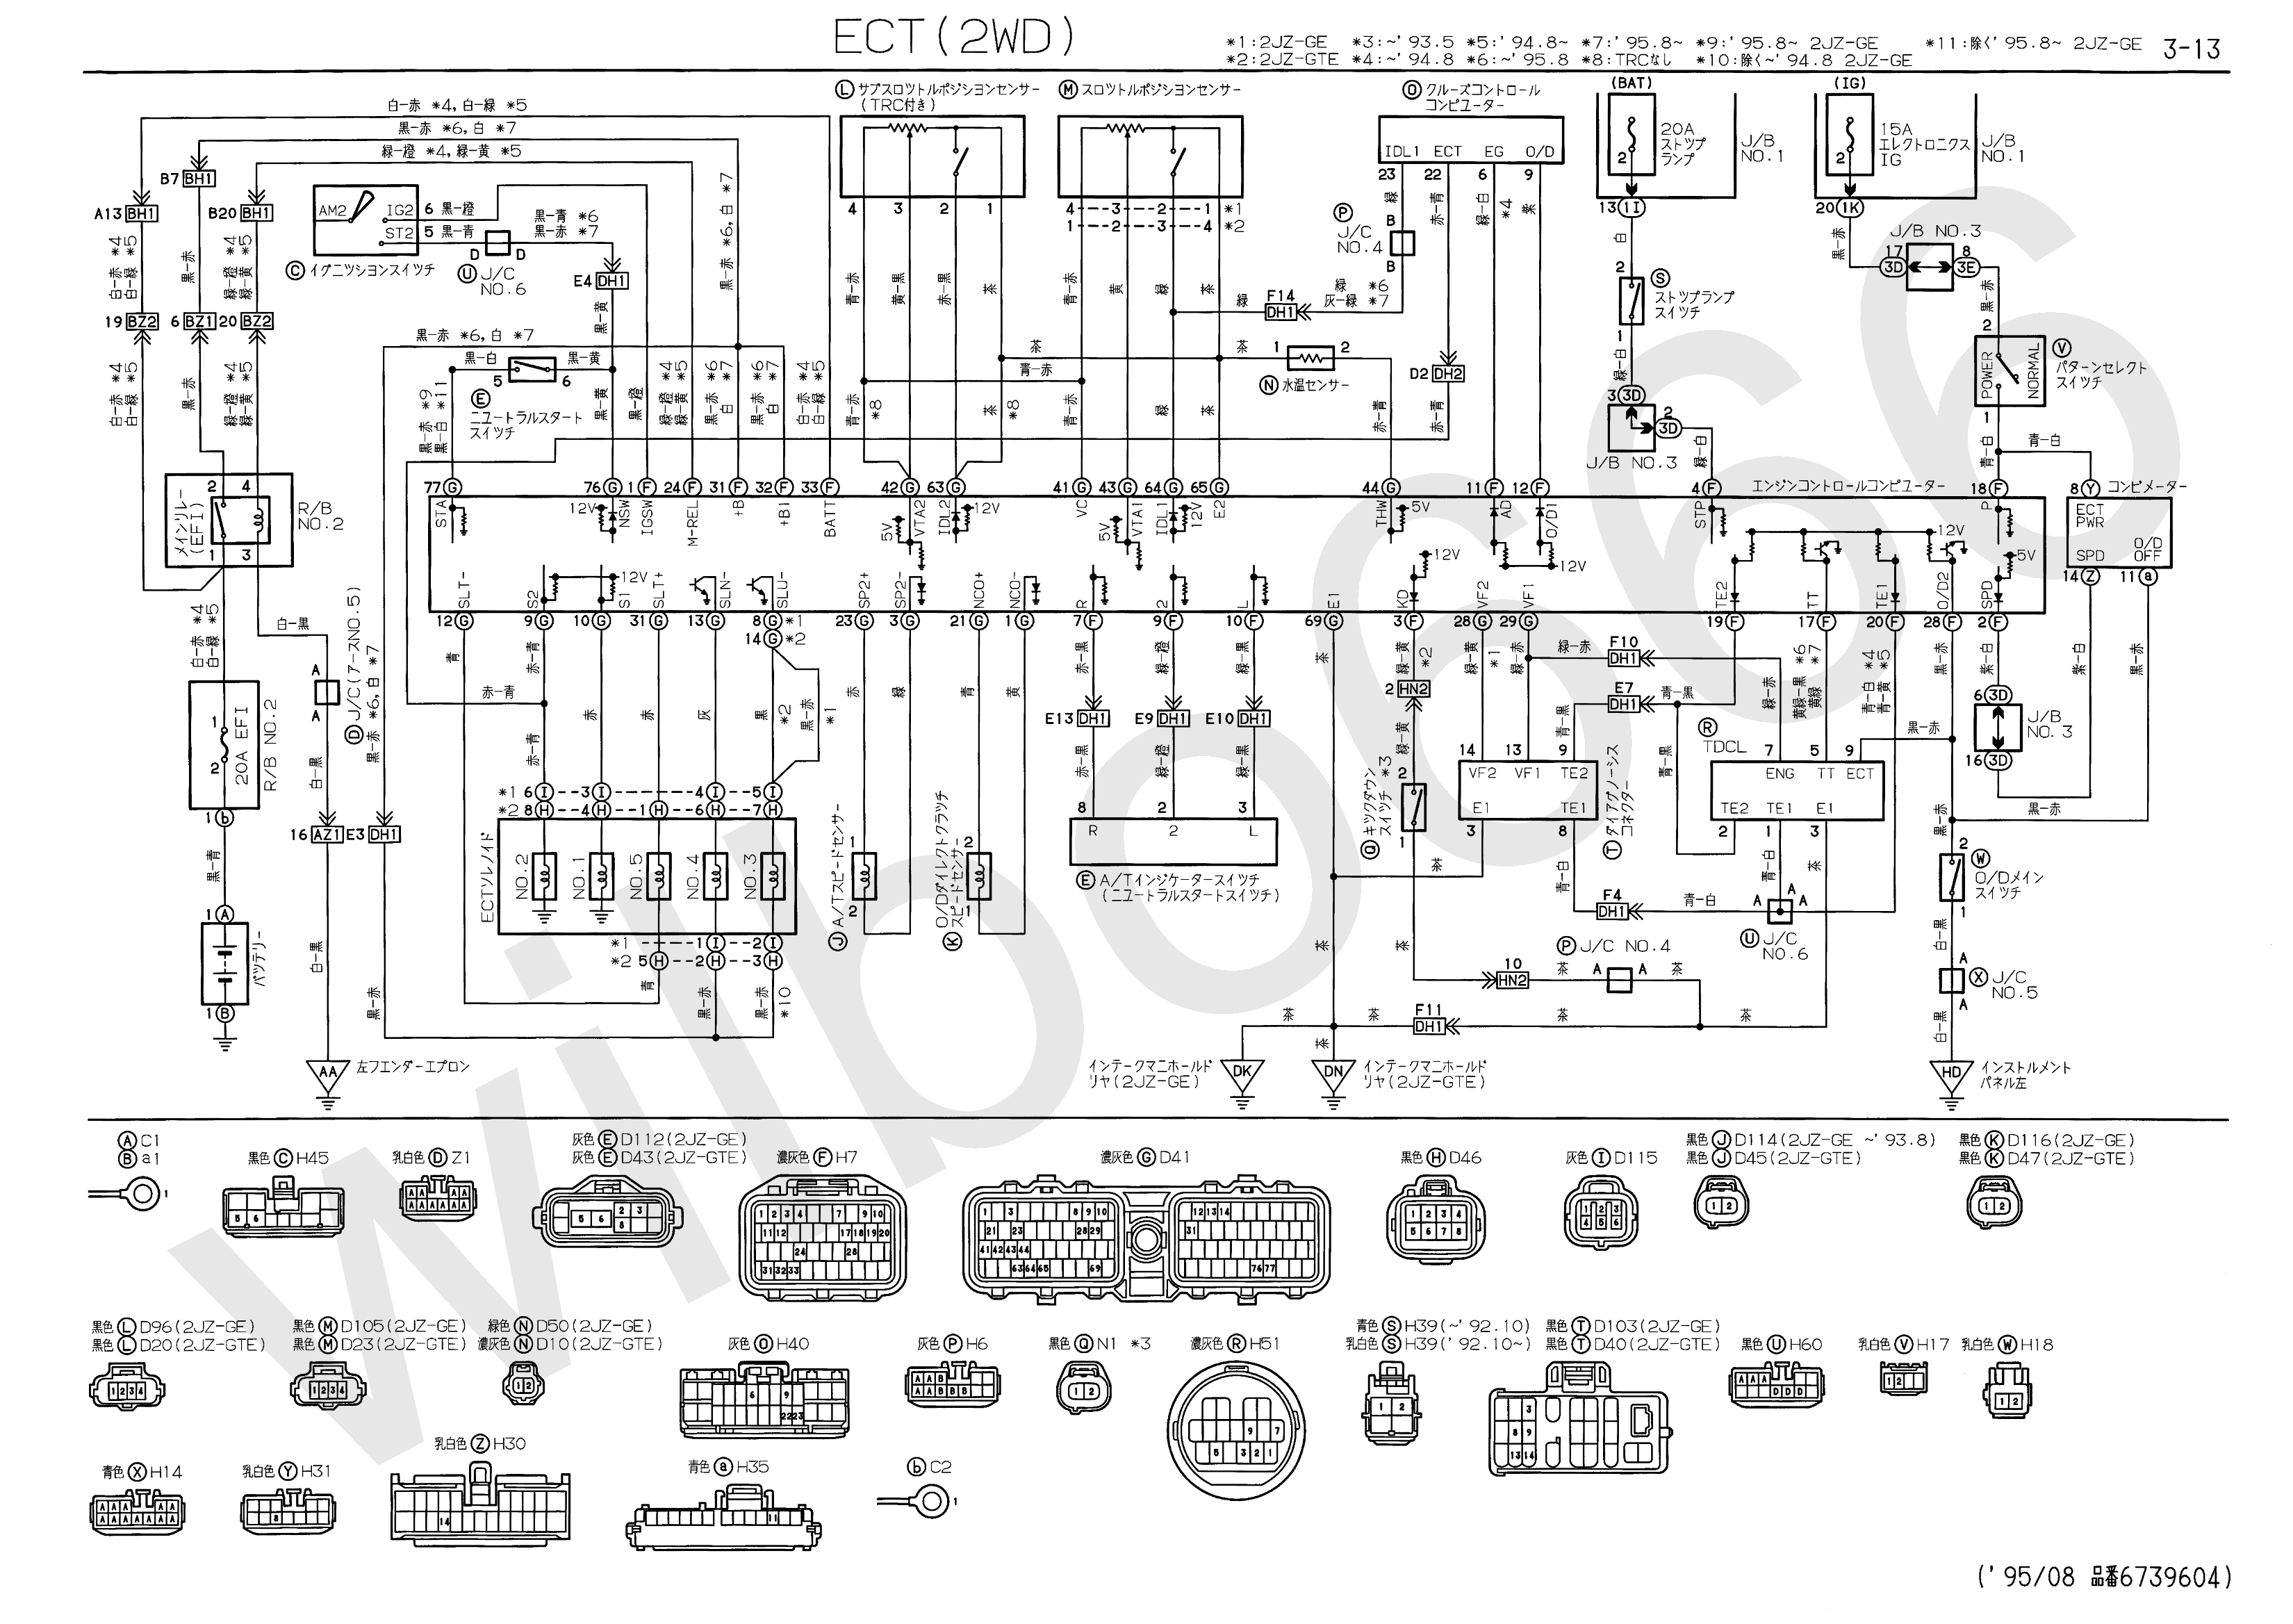 2010 kia forte map sensor diagram  2010  get free image about wiring diagram